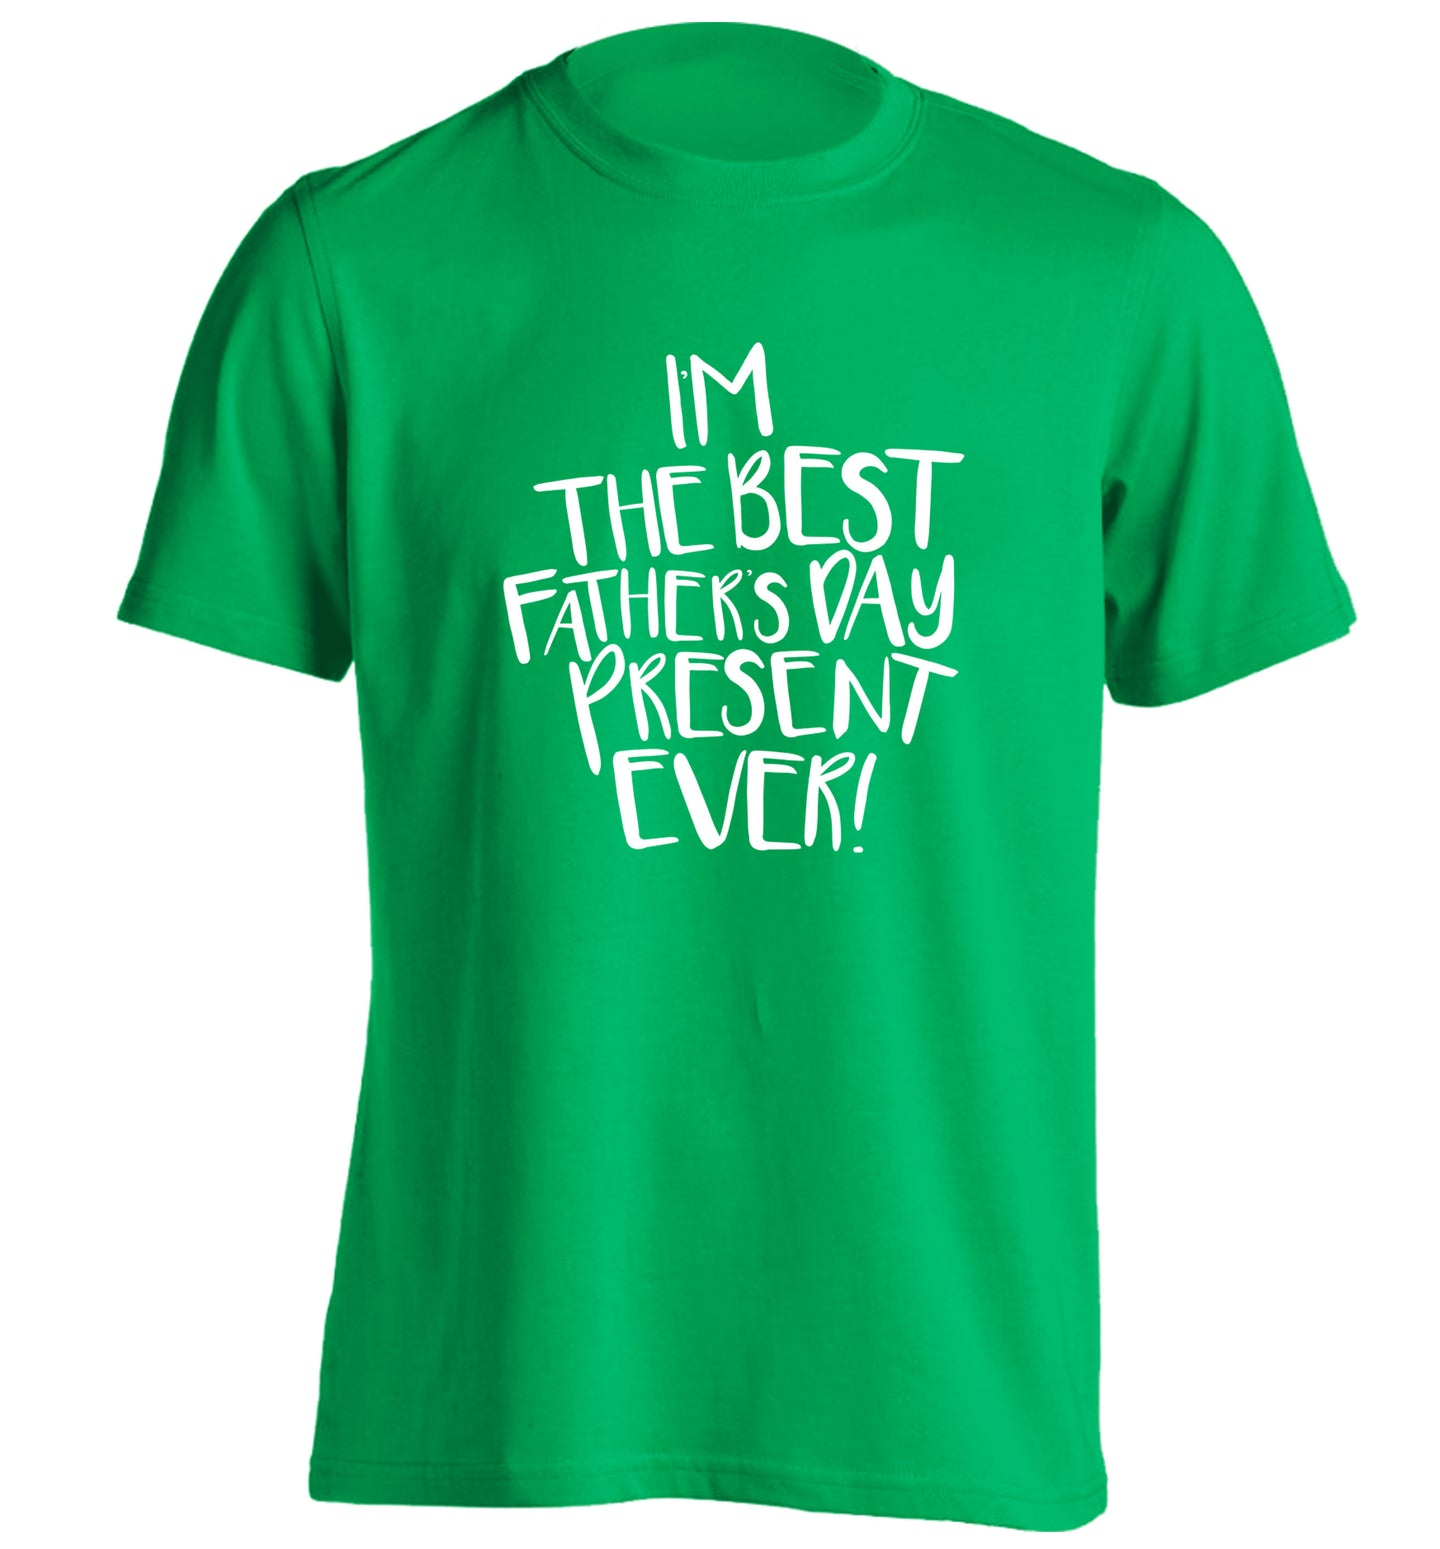 I'm the best father's day present ever! adults unisex green Tshirt 2XL